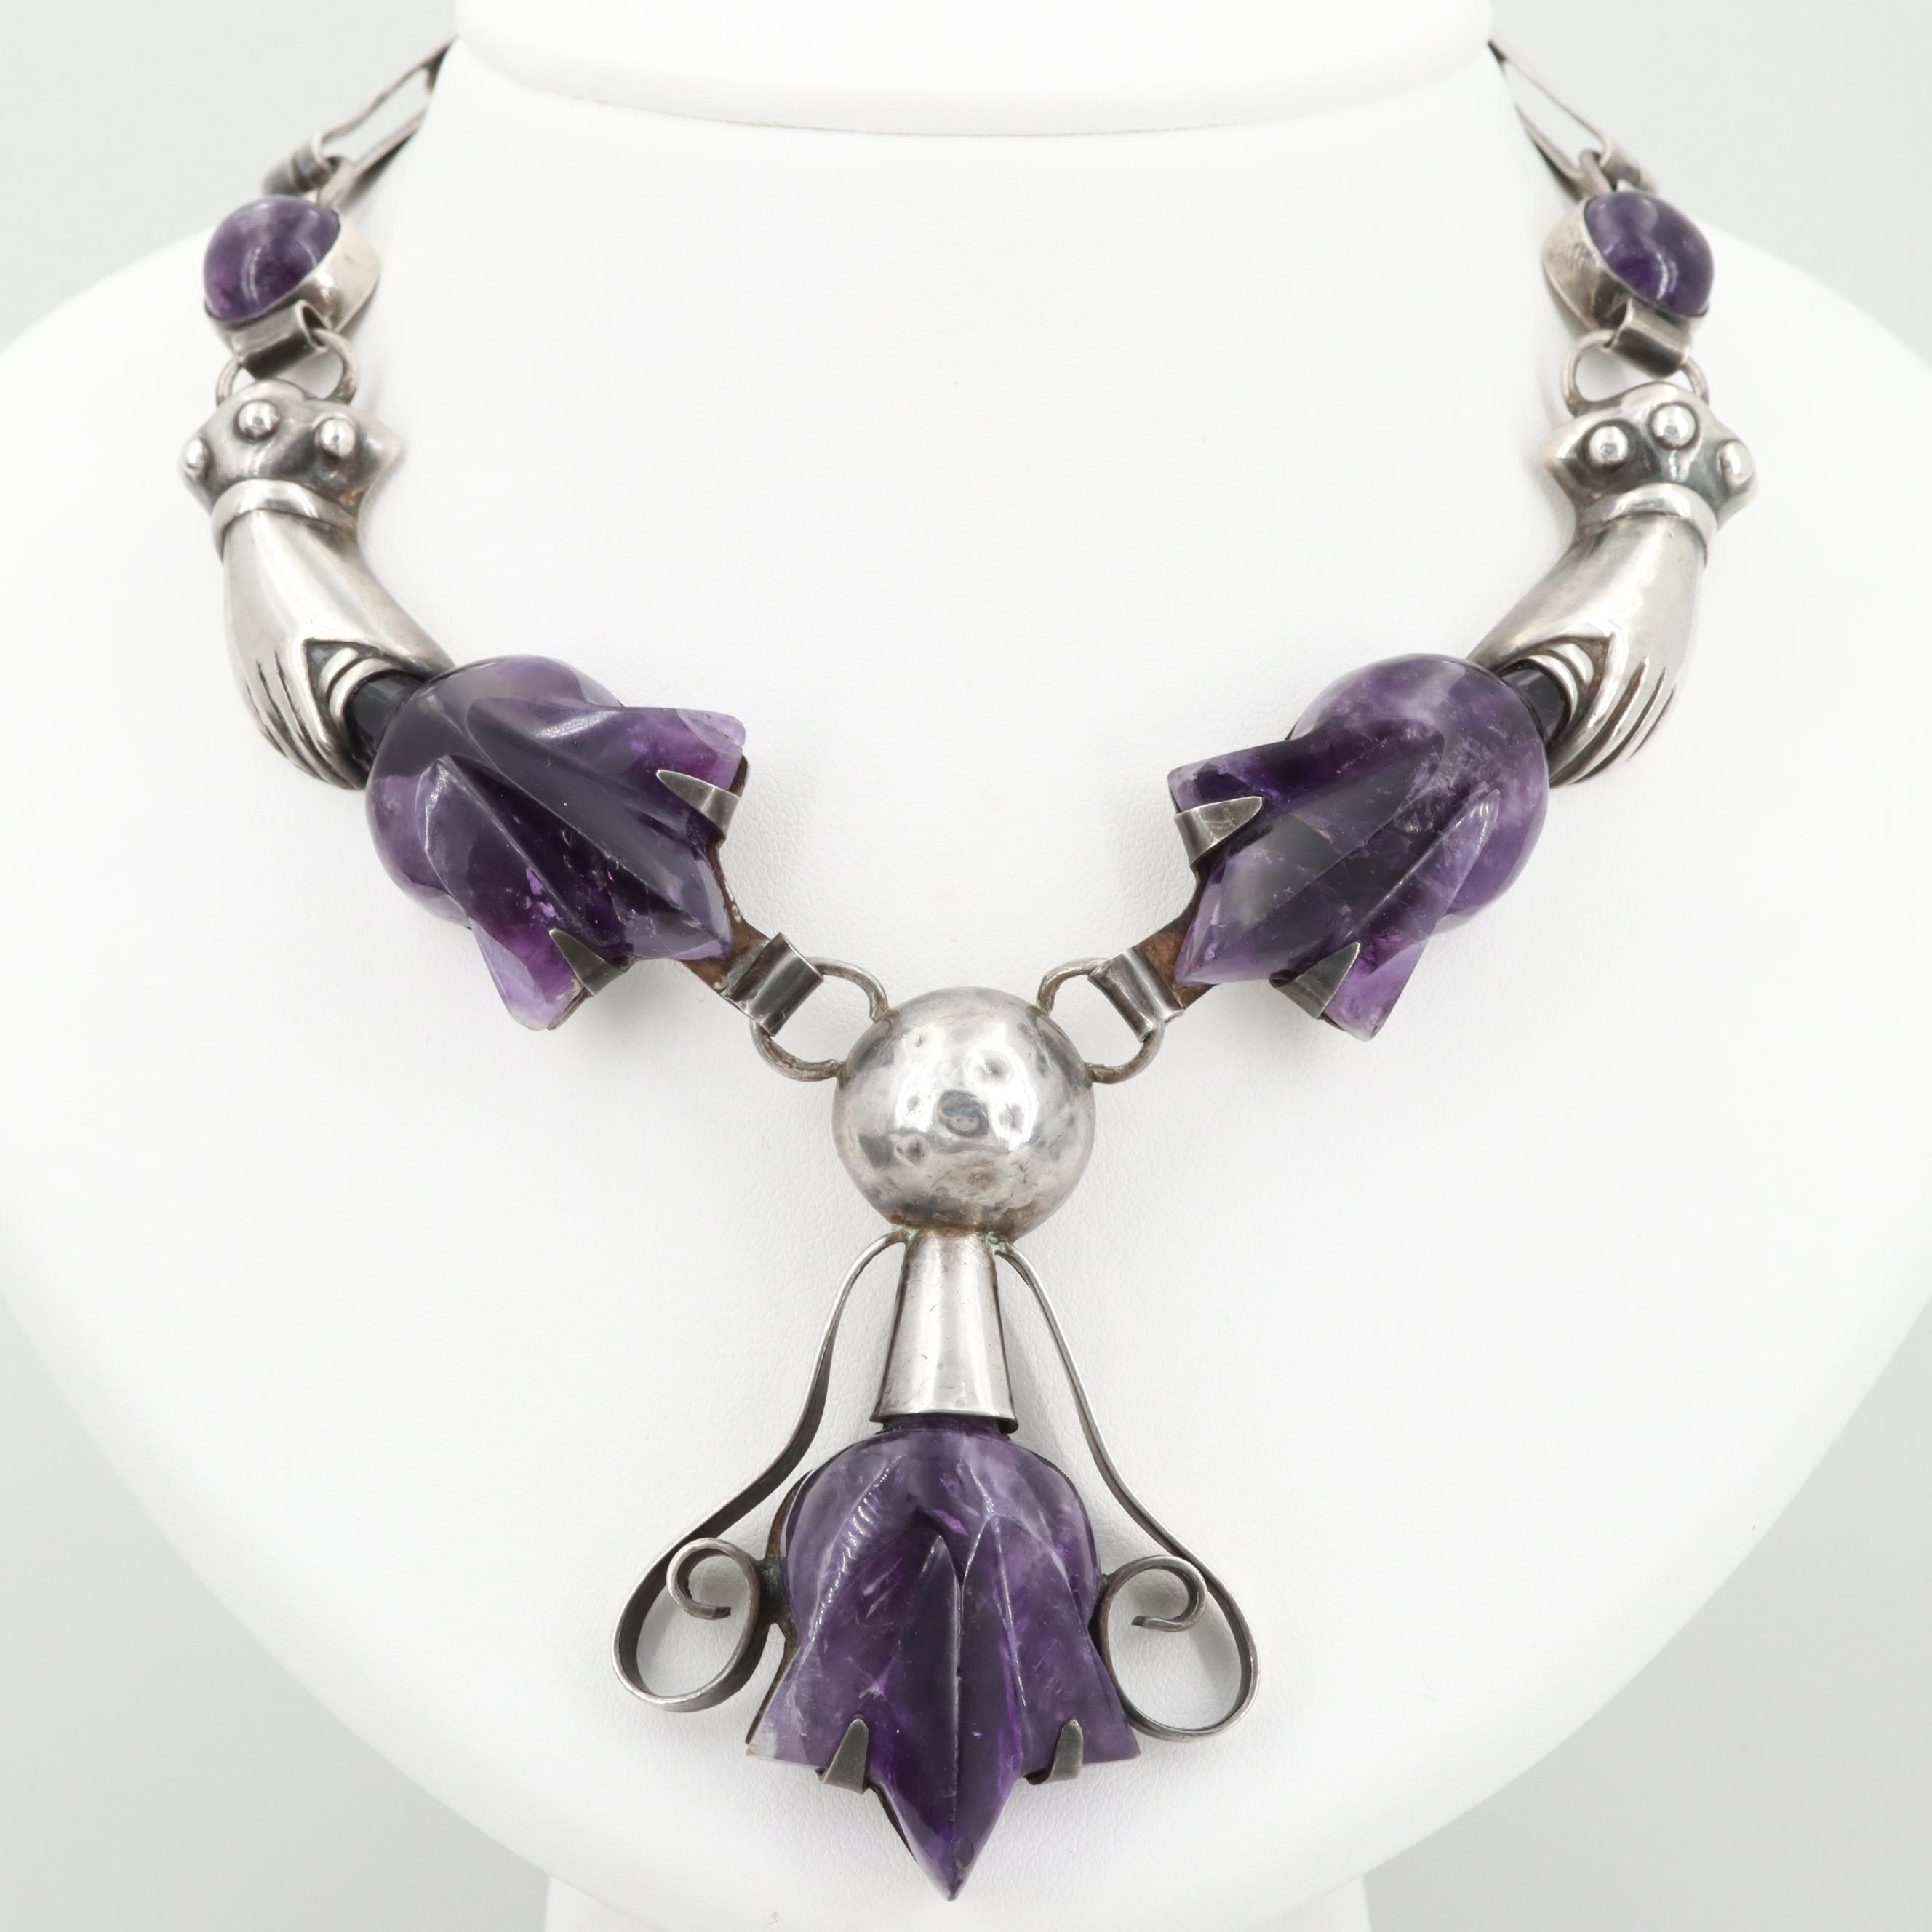 Circa 1940s Mexico Sterling Silver Amethyst Necklace